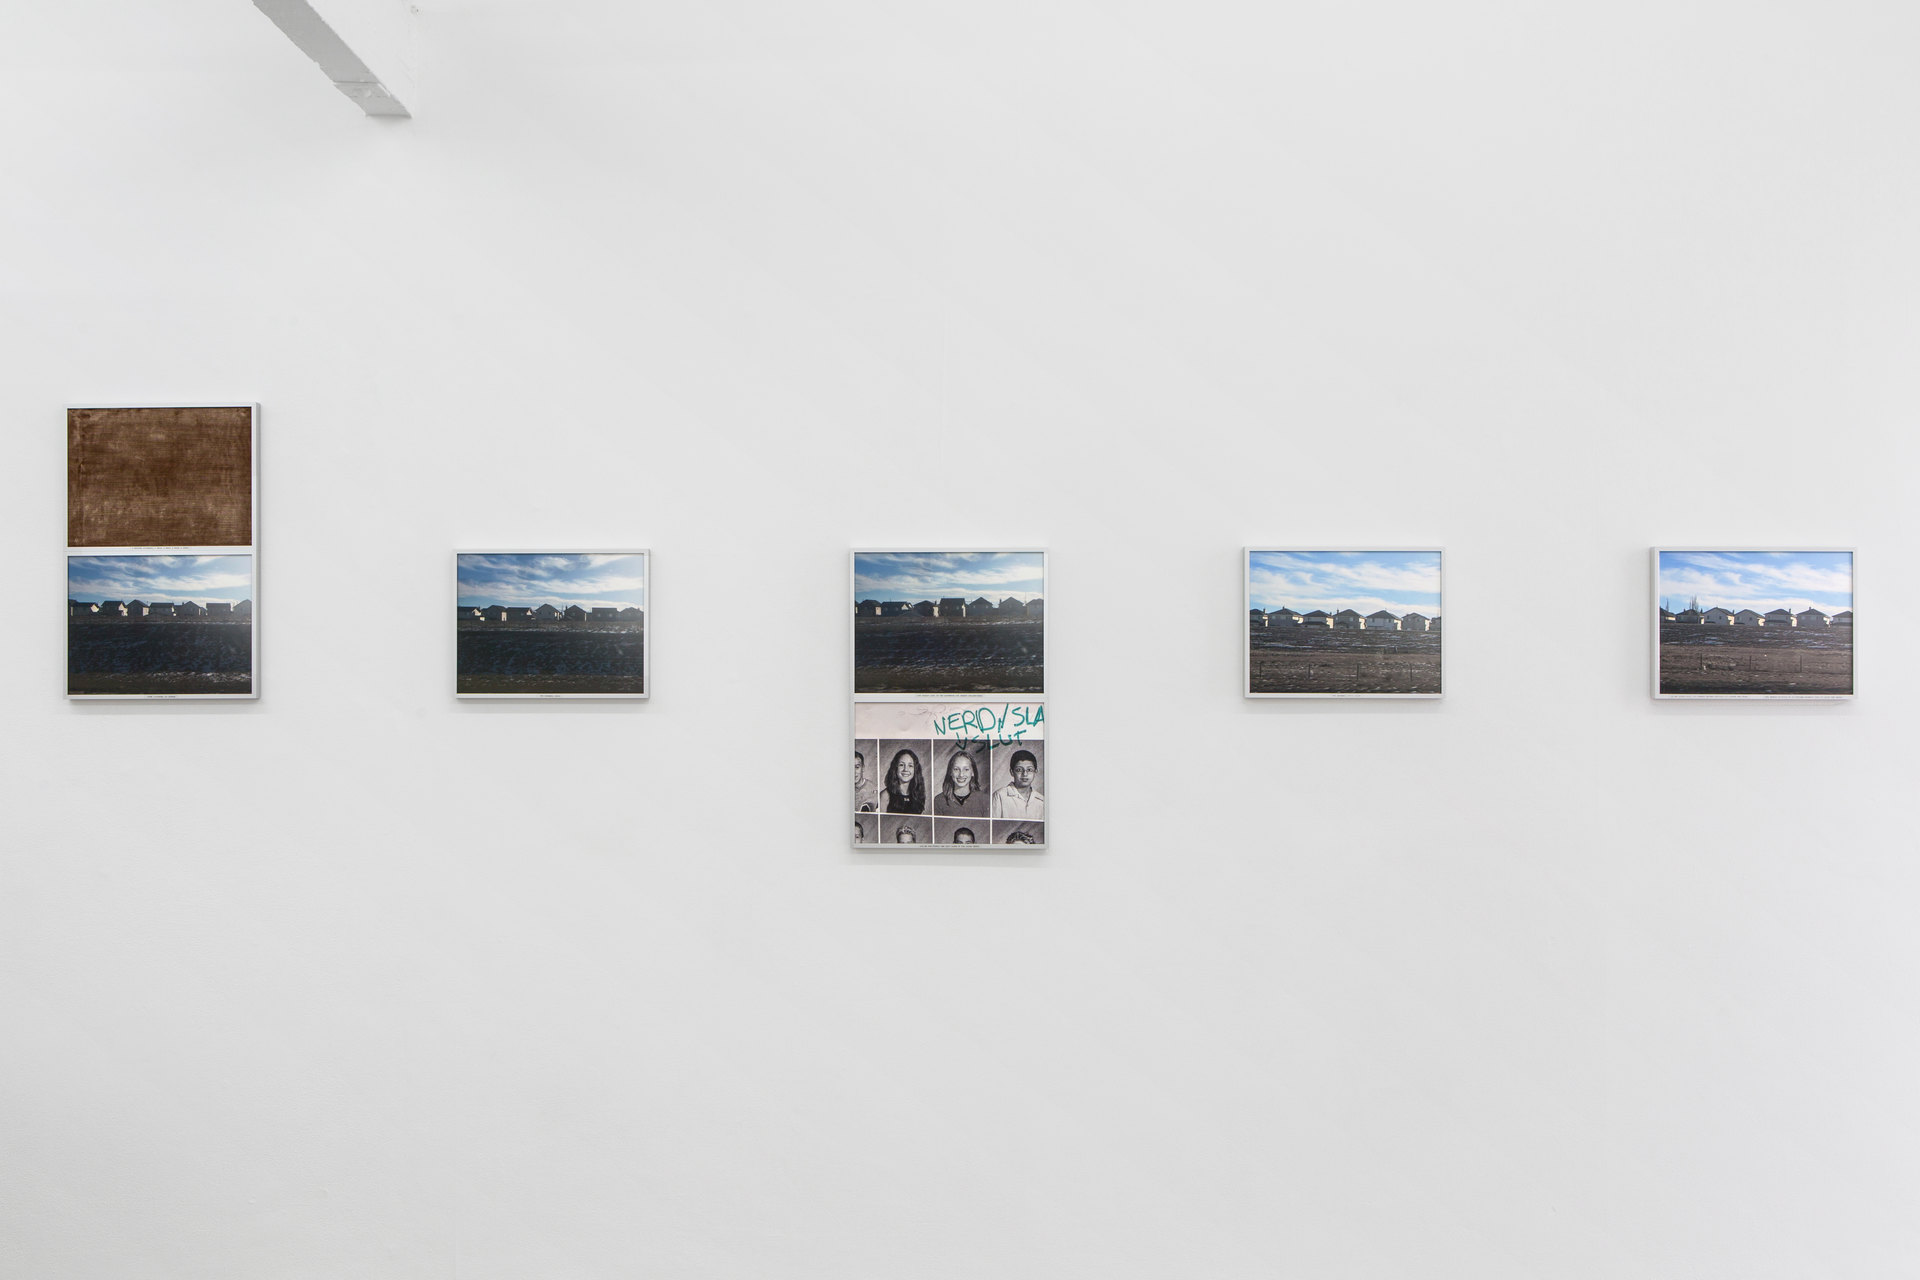 Rosa Aiello, 'Progression (Harvest Hills – Coventry Hills)', 2019, Digital print, photo rag paper, acetate film, glue, upholstery fabric, aluminium frames Series of 11, 31.2 x 41.2cm, or 62.4 x 41.2cm each, Cell Project Space